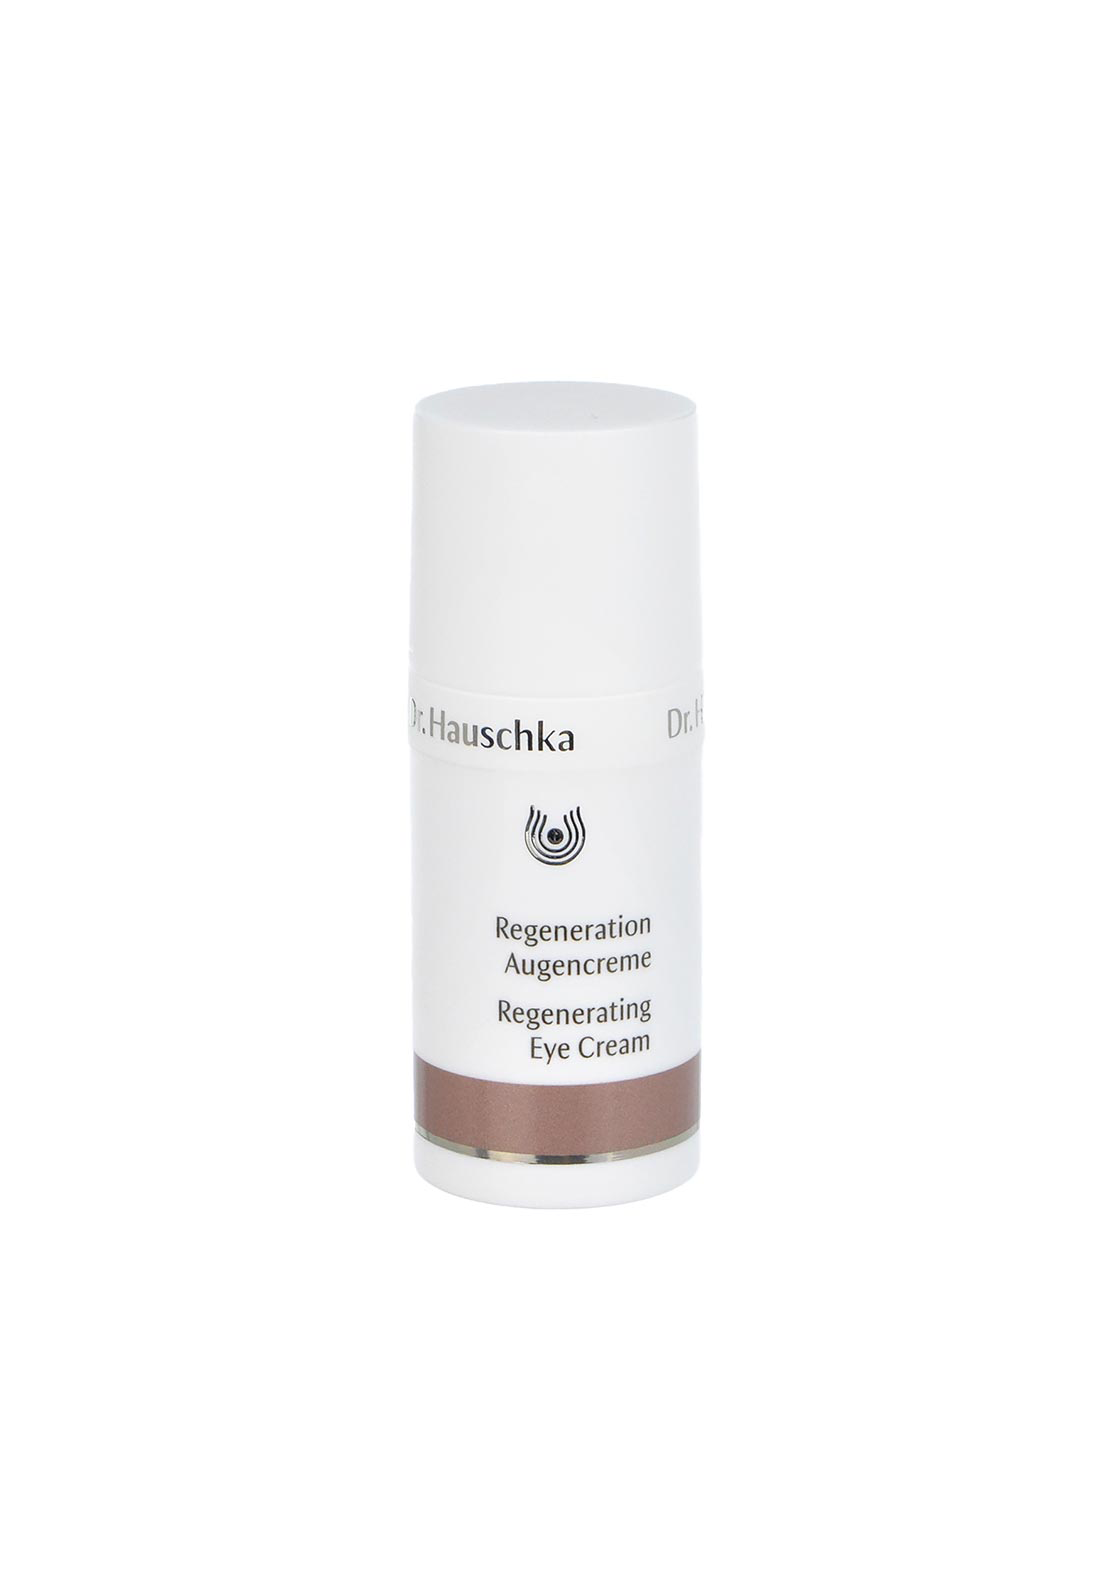 Dr. Hauschka Regenerating Eye Cream, 15ml